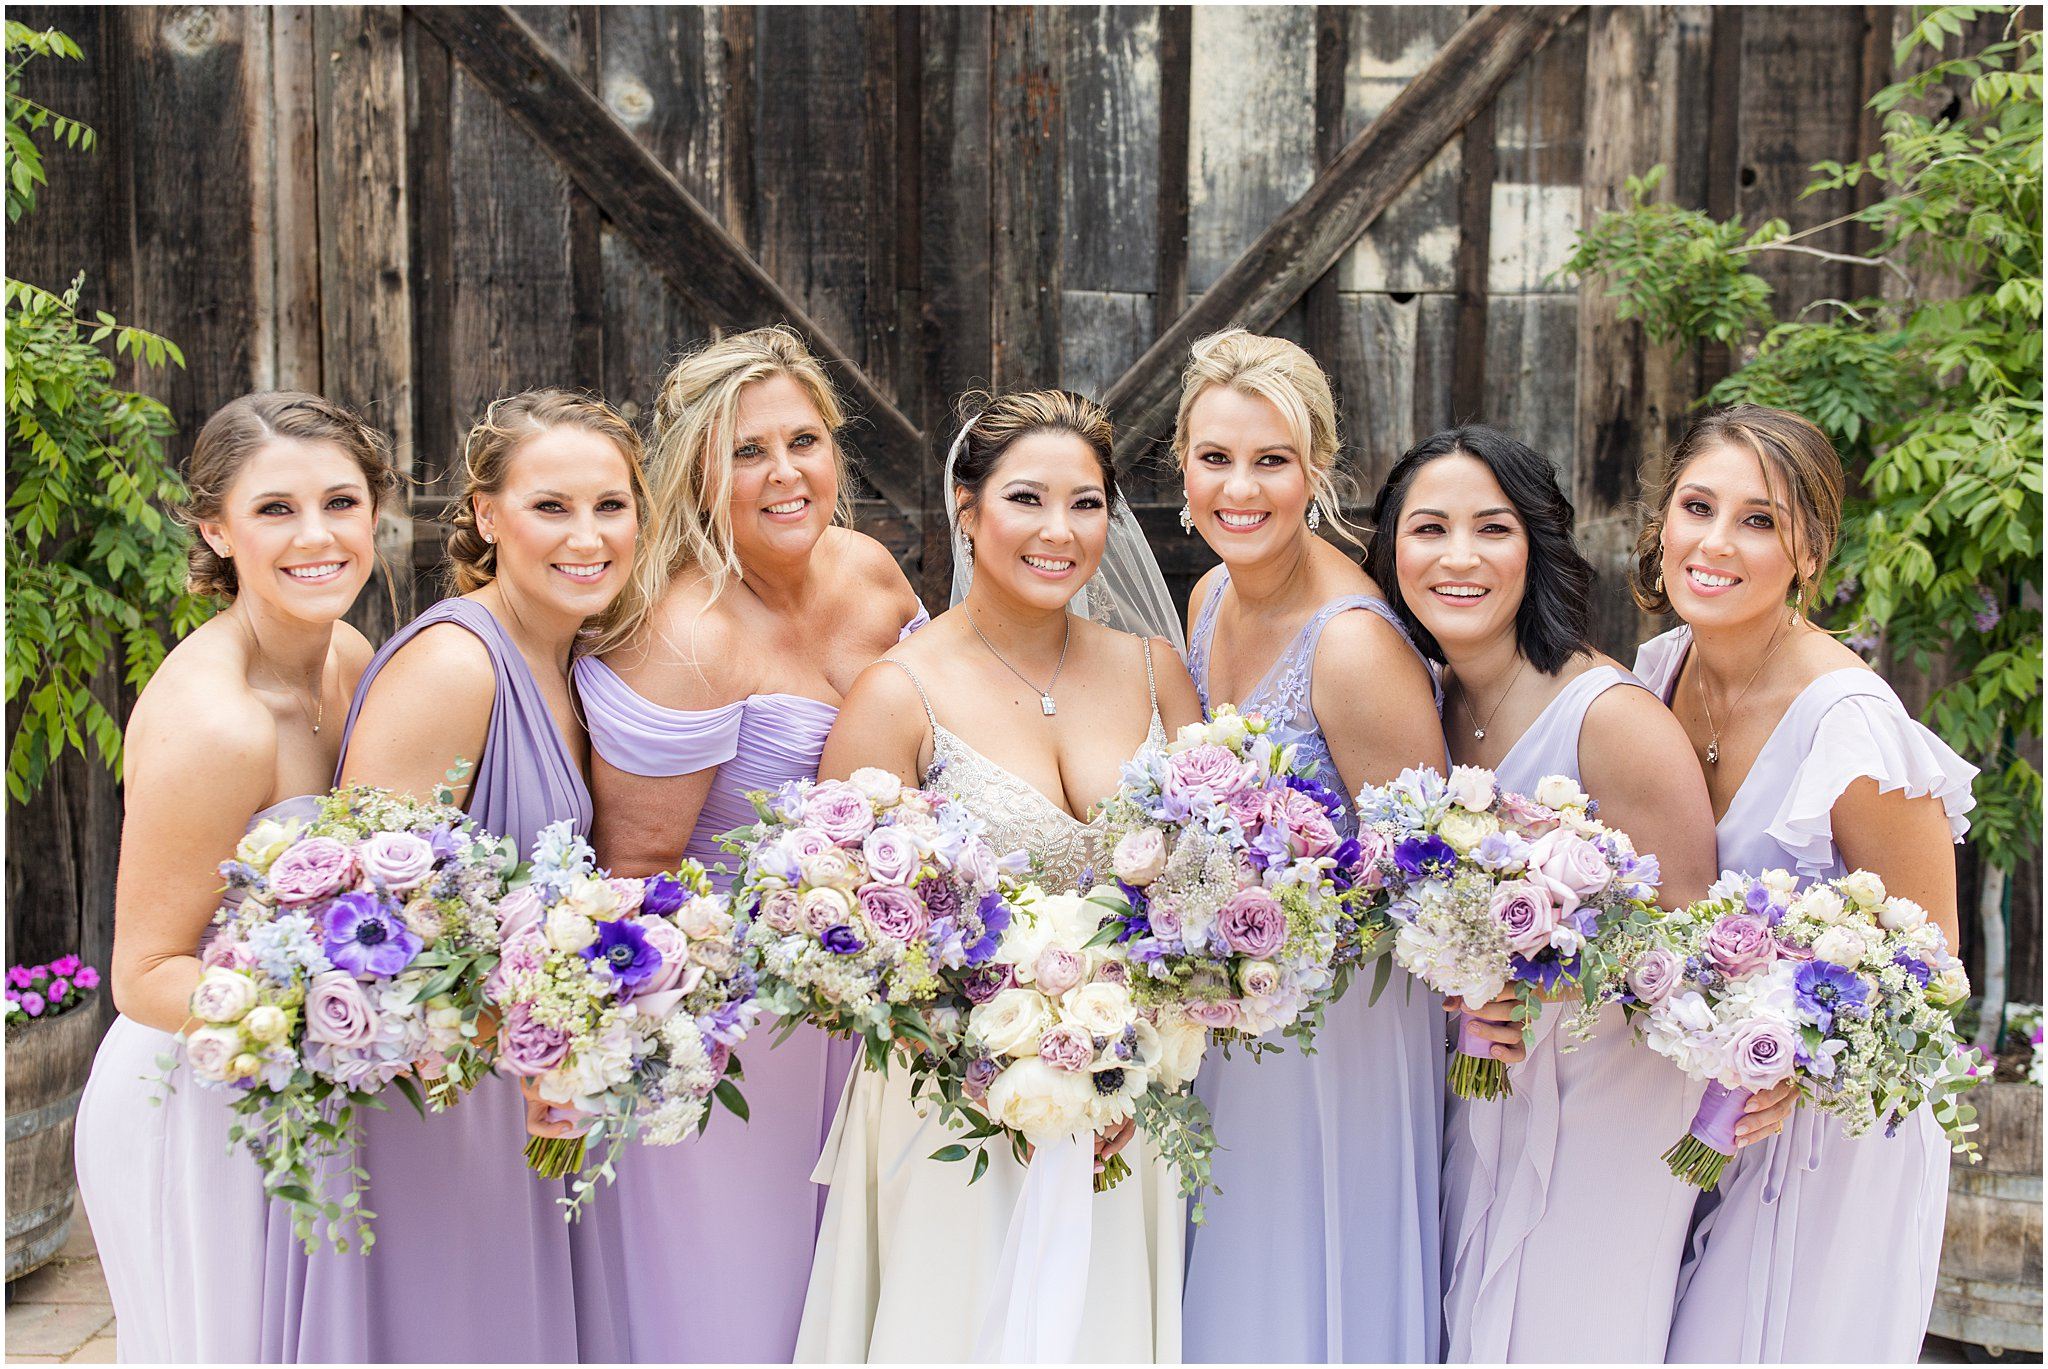 2019 wedding san juan bautista hacienda de leal vineyards bay area wedding photographer_0030.jpg